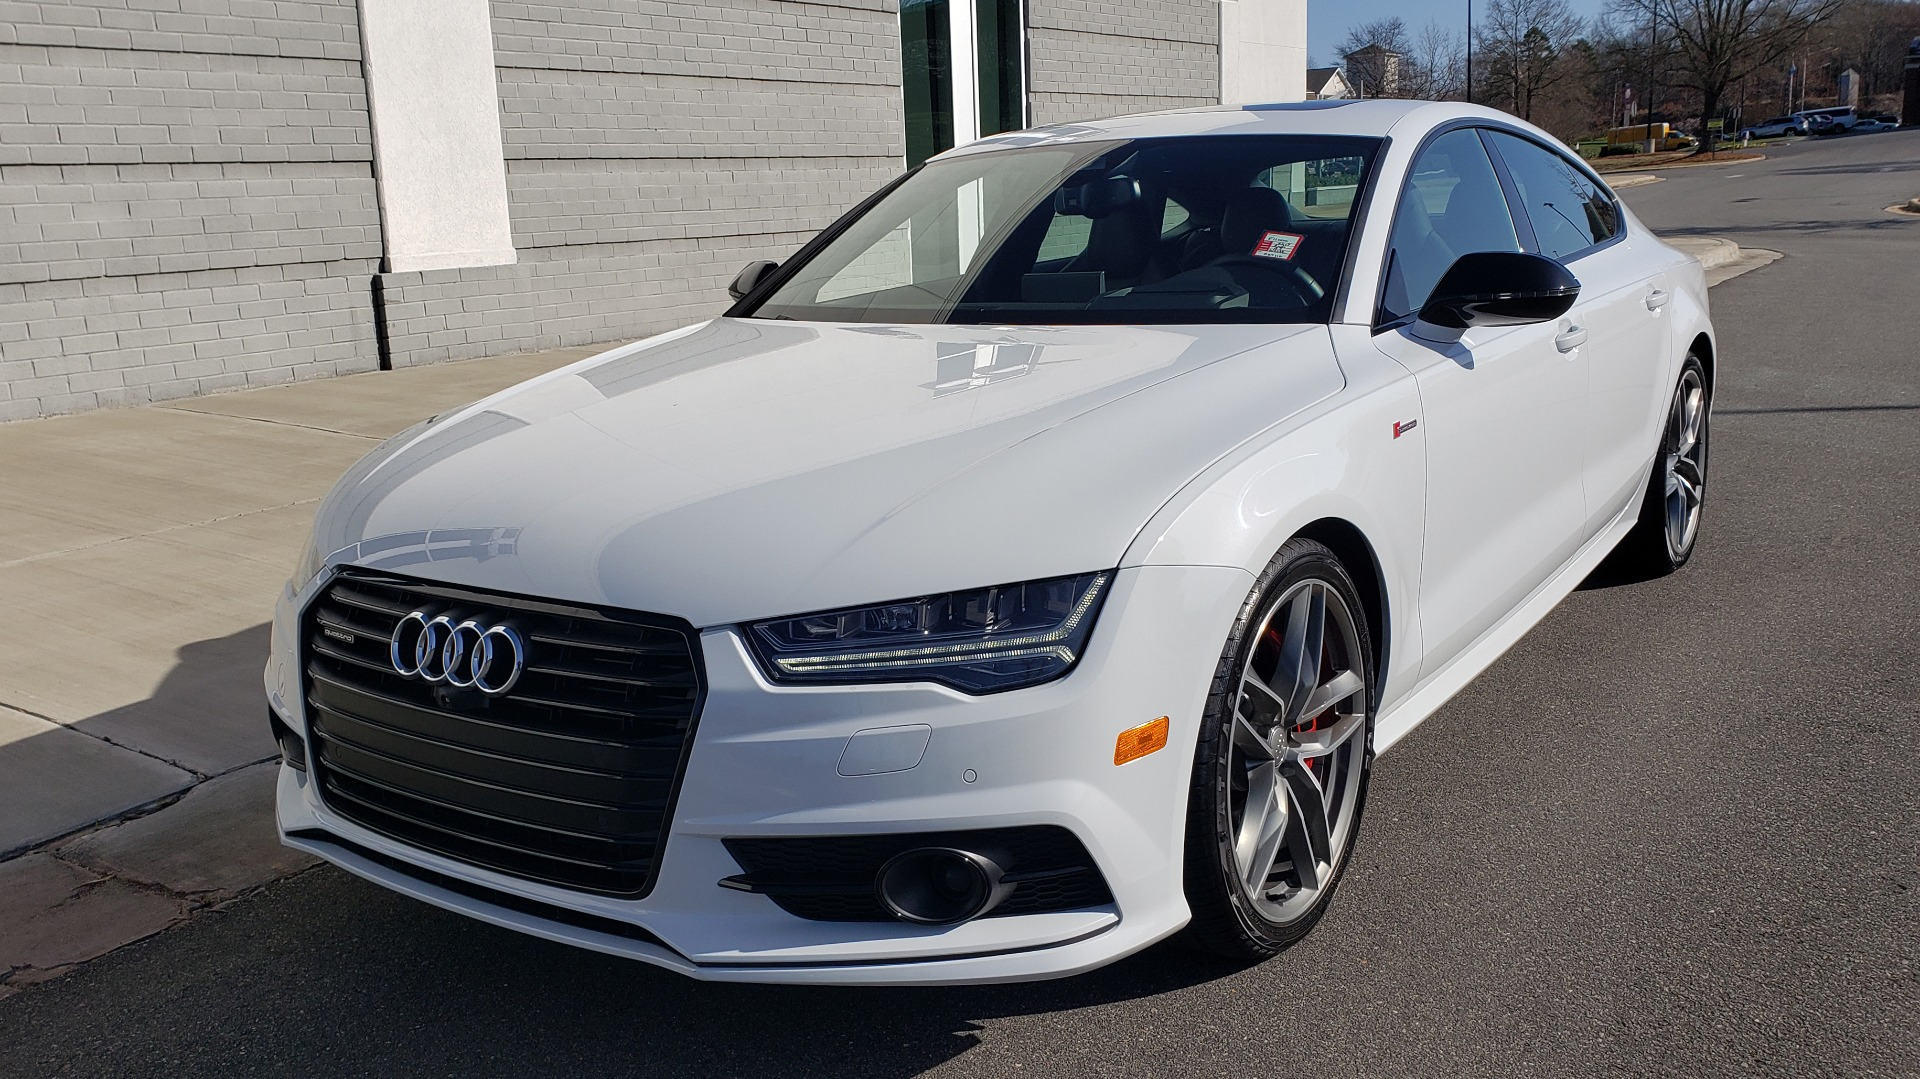 Used 2017 Audi A7 COMPETITION PRESTIGE 3.0T / NAV / DRVR ASST / ADAPT CRUISE for sale $41,995 at Formula Imports in Charlotte NC 28227 3